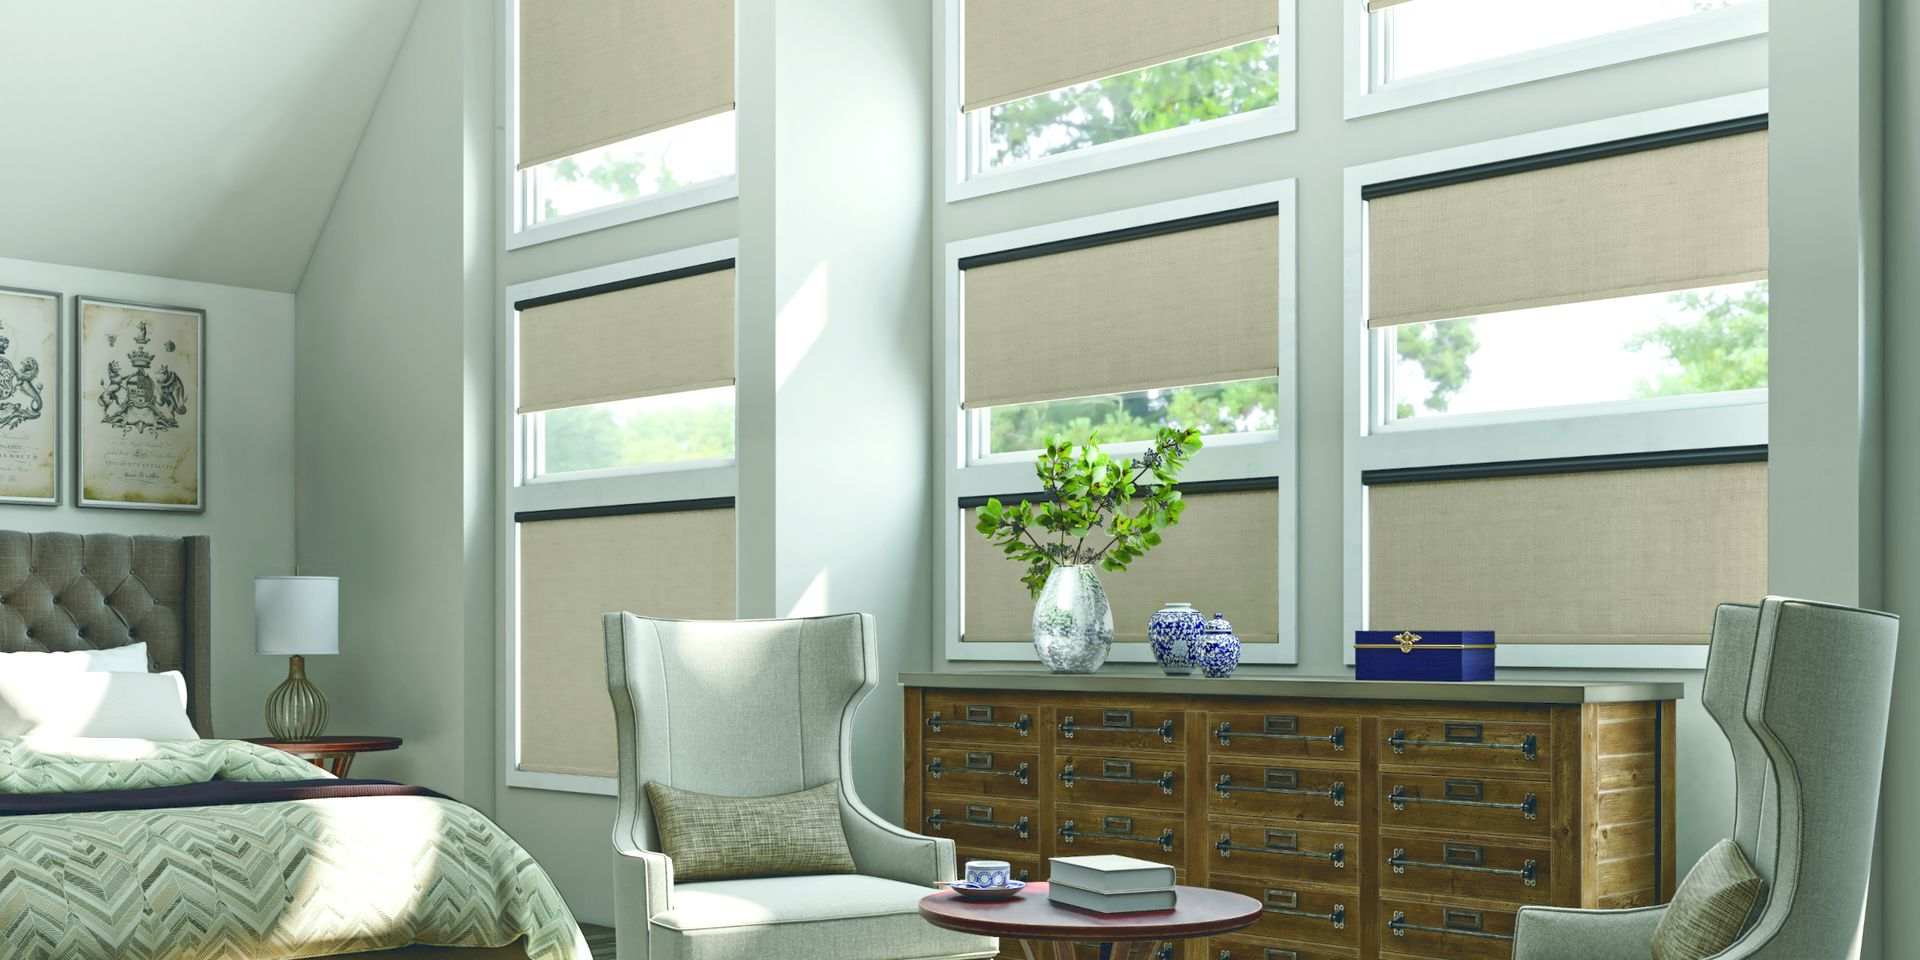 How to Choose the Right Motorized Blinds and Shades for Your Home